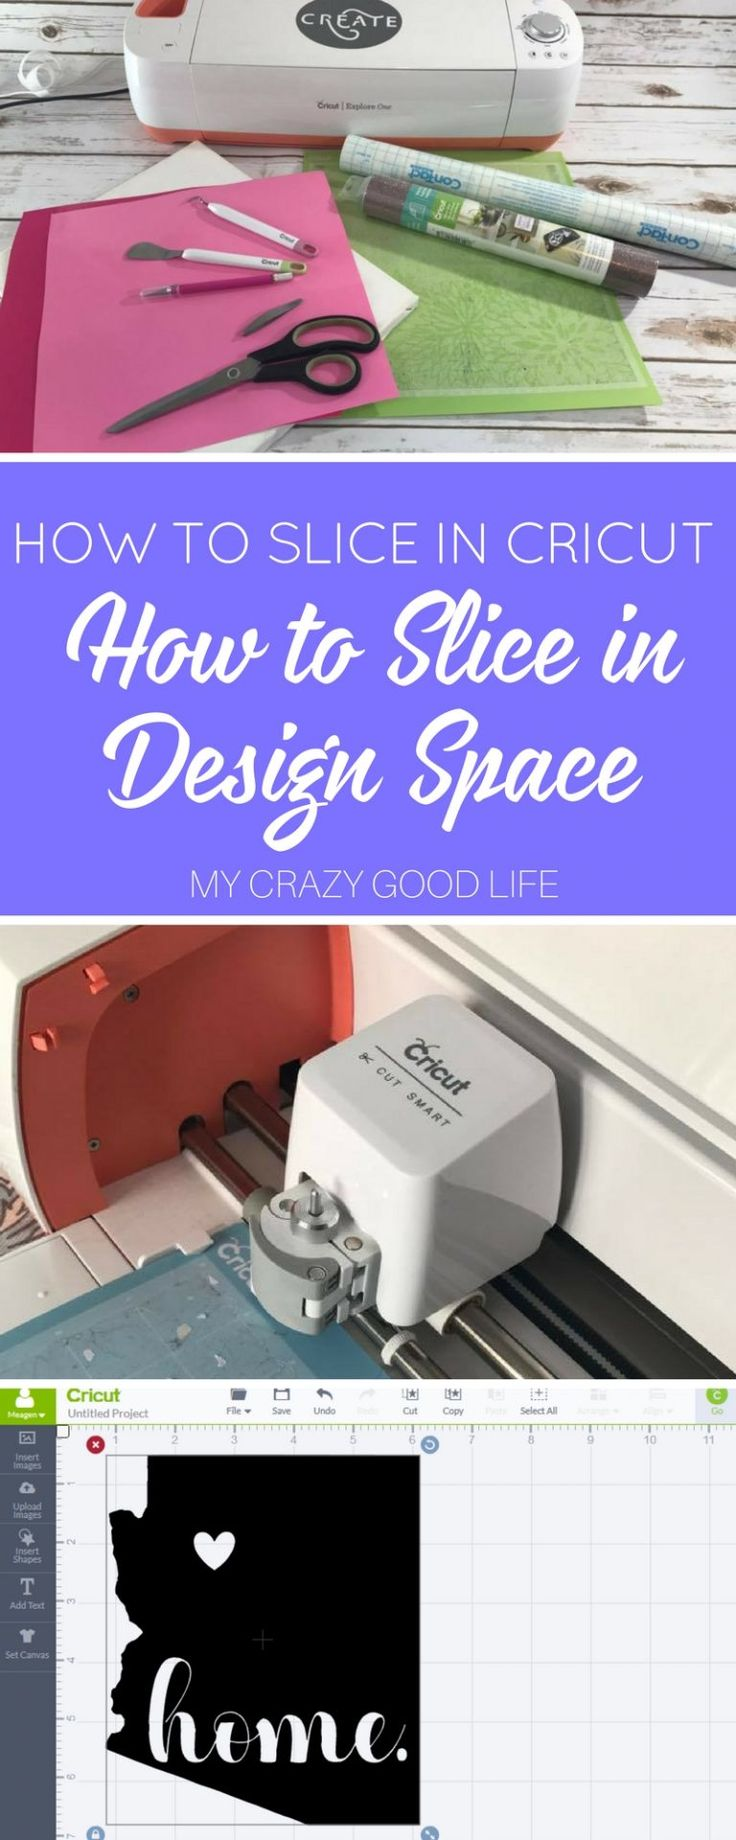 How To Slice In Cricut